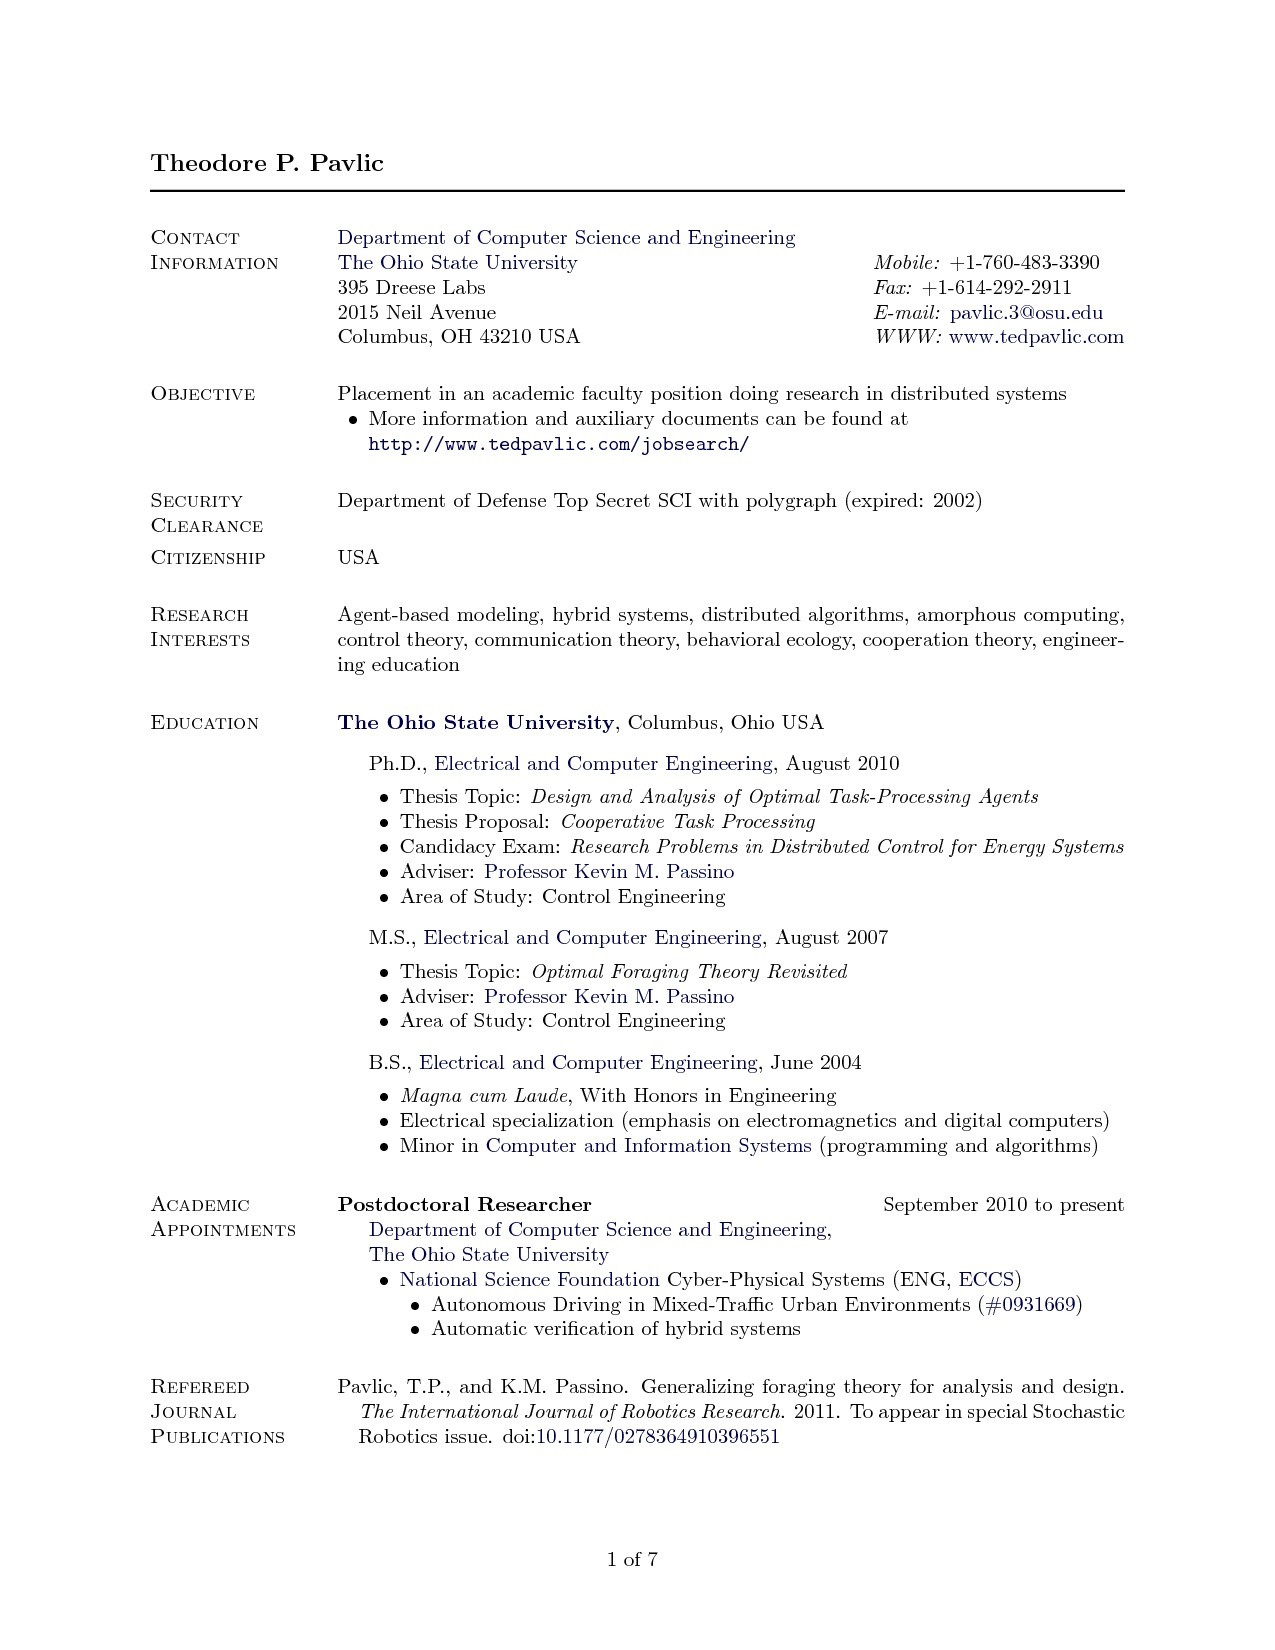 Academic Resume Template Latex - 19 Elegant Latex Template Resume